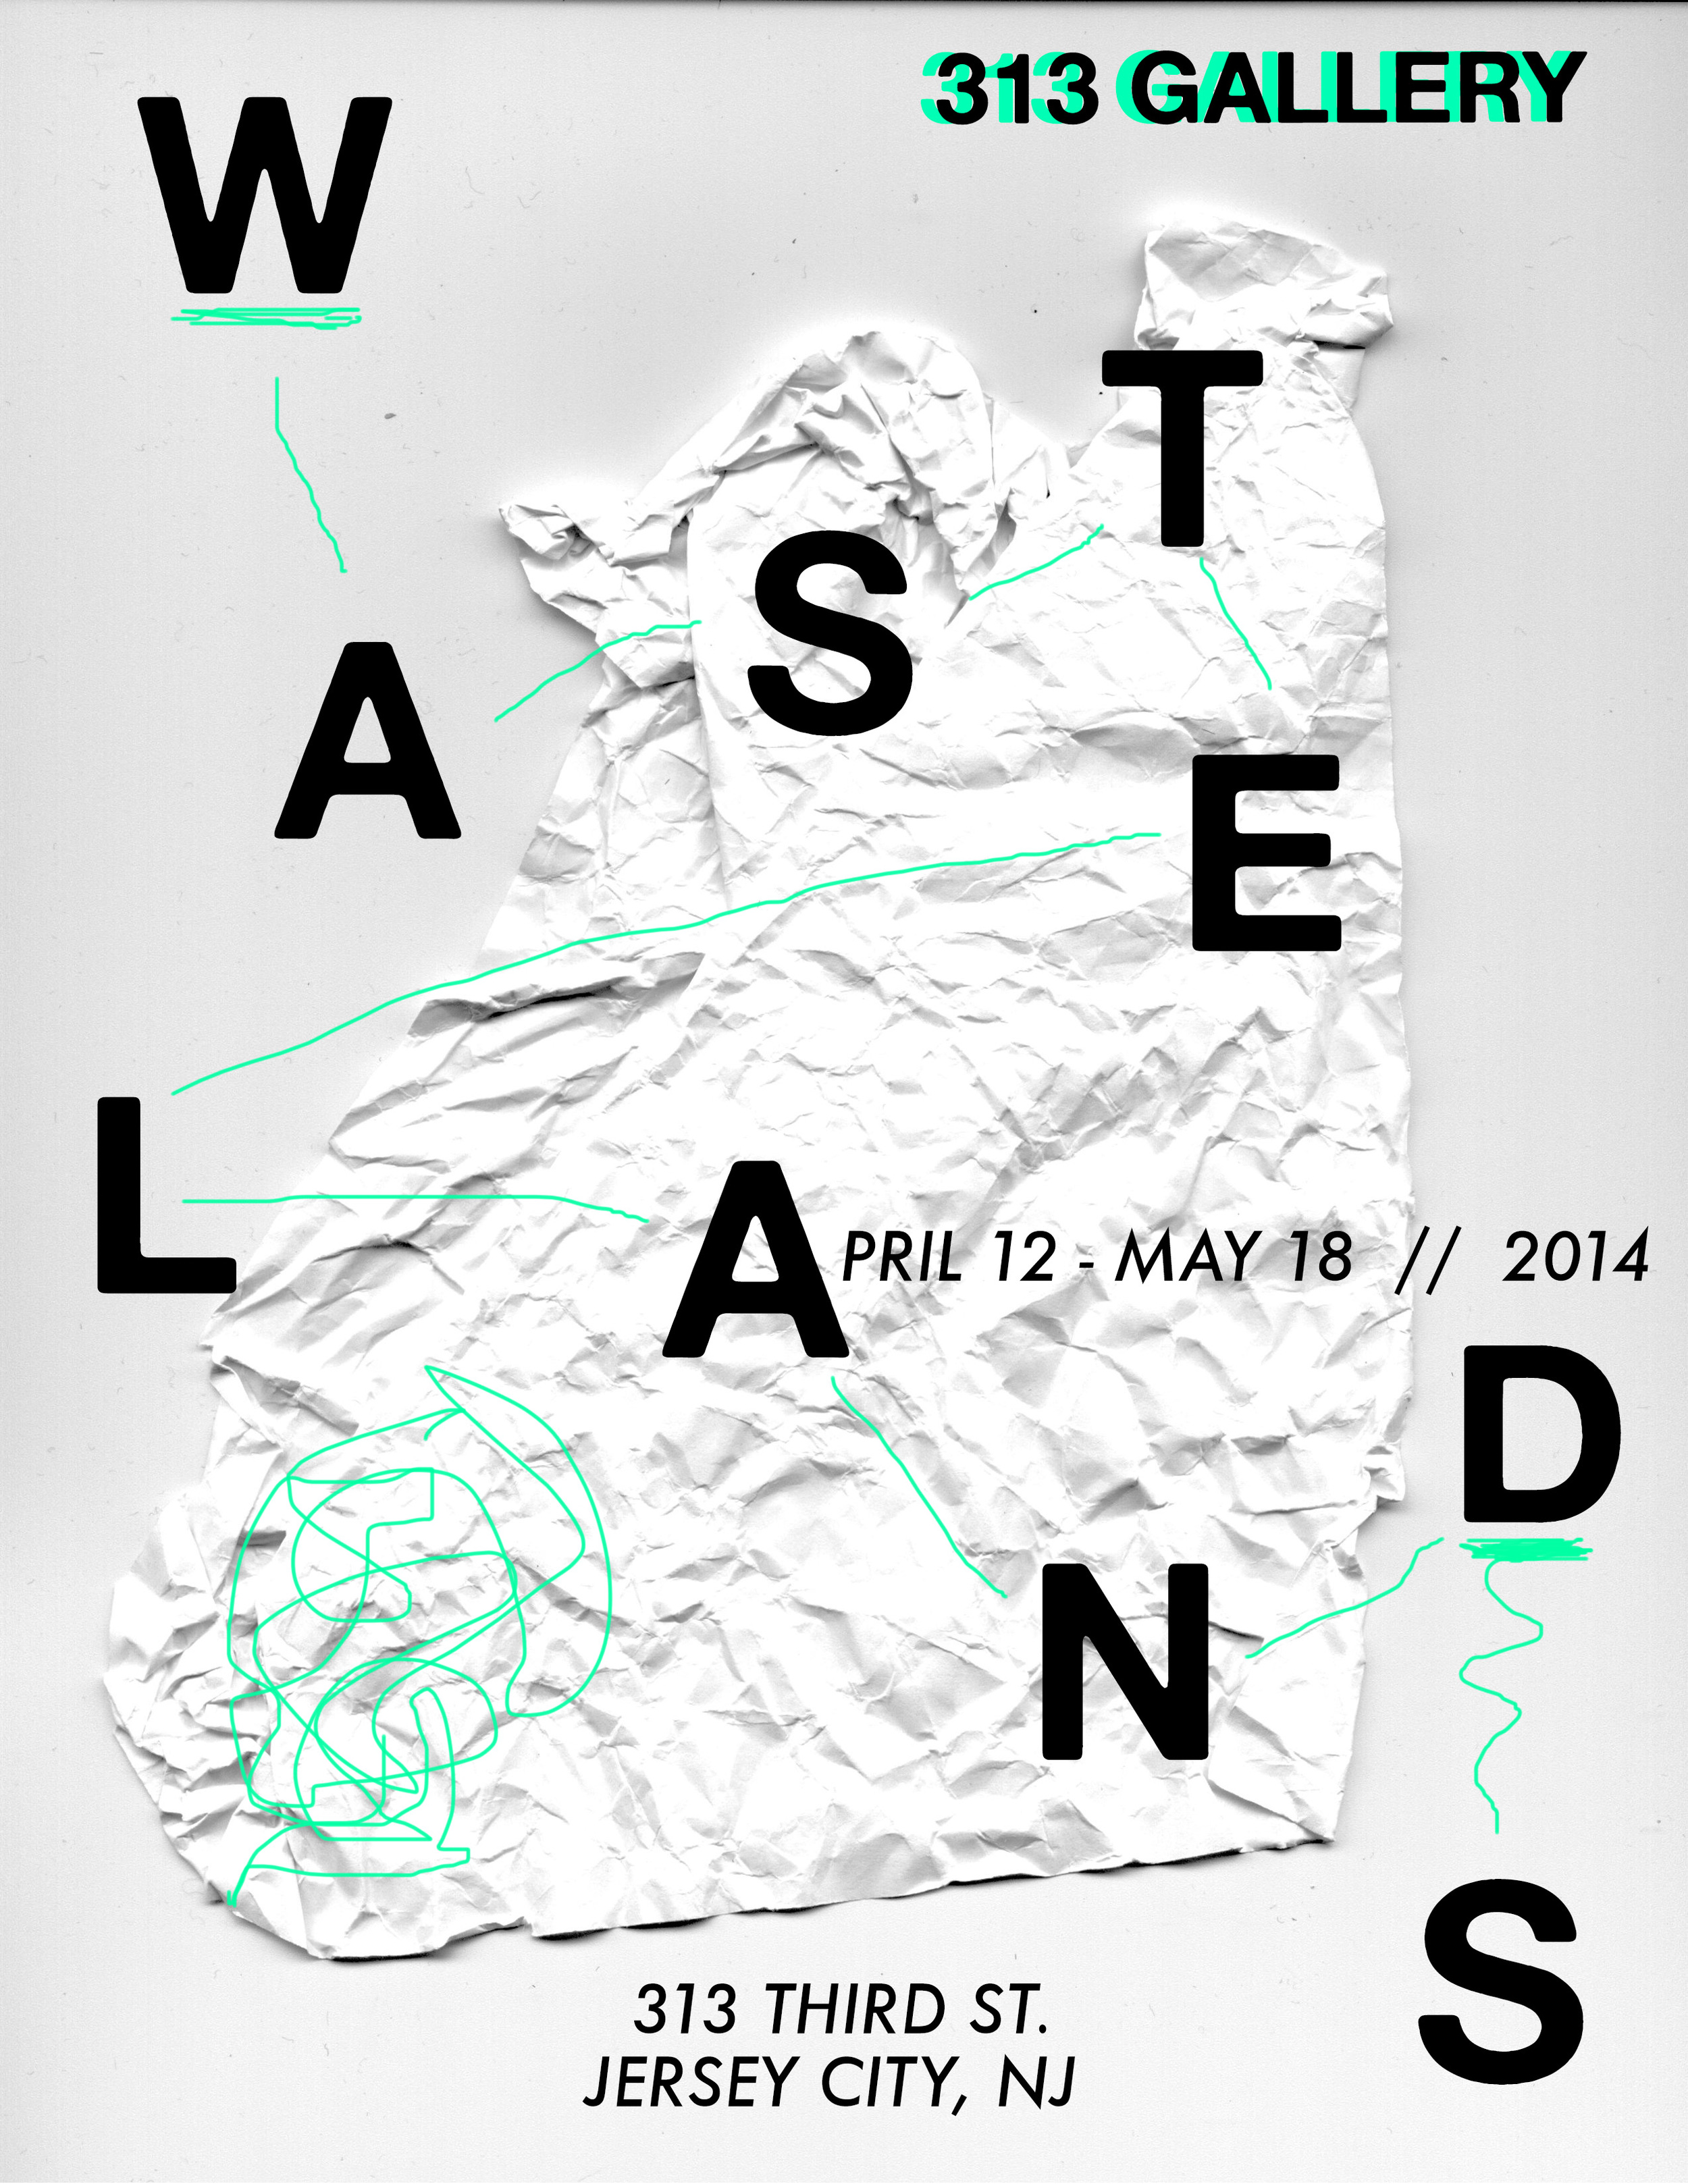 Exhibition poster designed for 313 Gallery's  Wastelands  exhibition, Spring 2014.